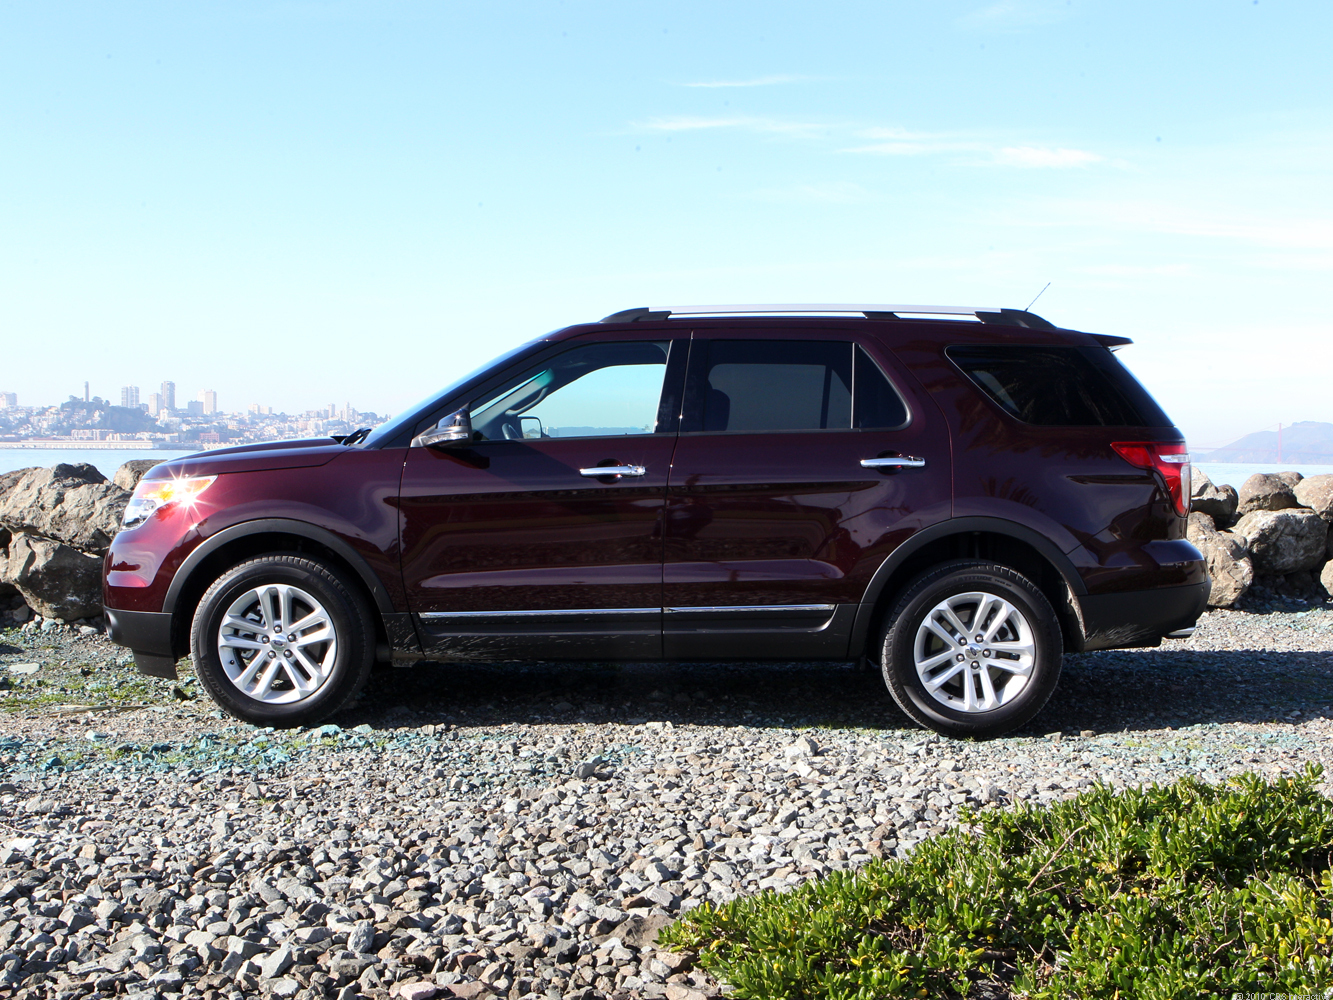 2011 ford explorer xlt review cnet. Black Bedroom Furniture Sets. Home Design Ideas